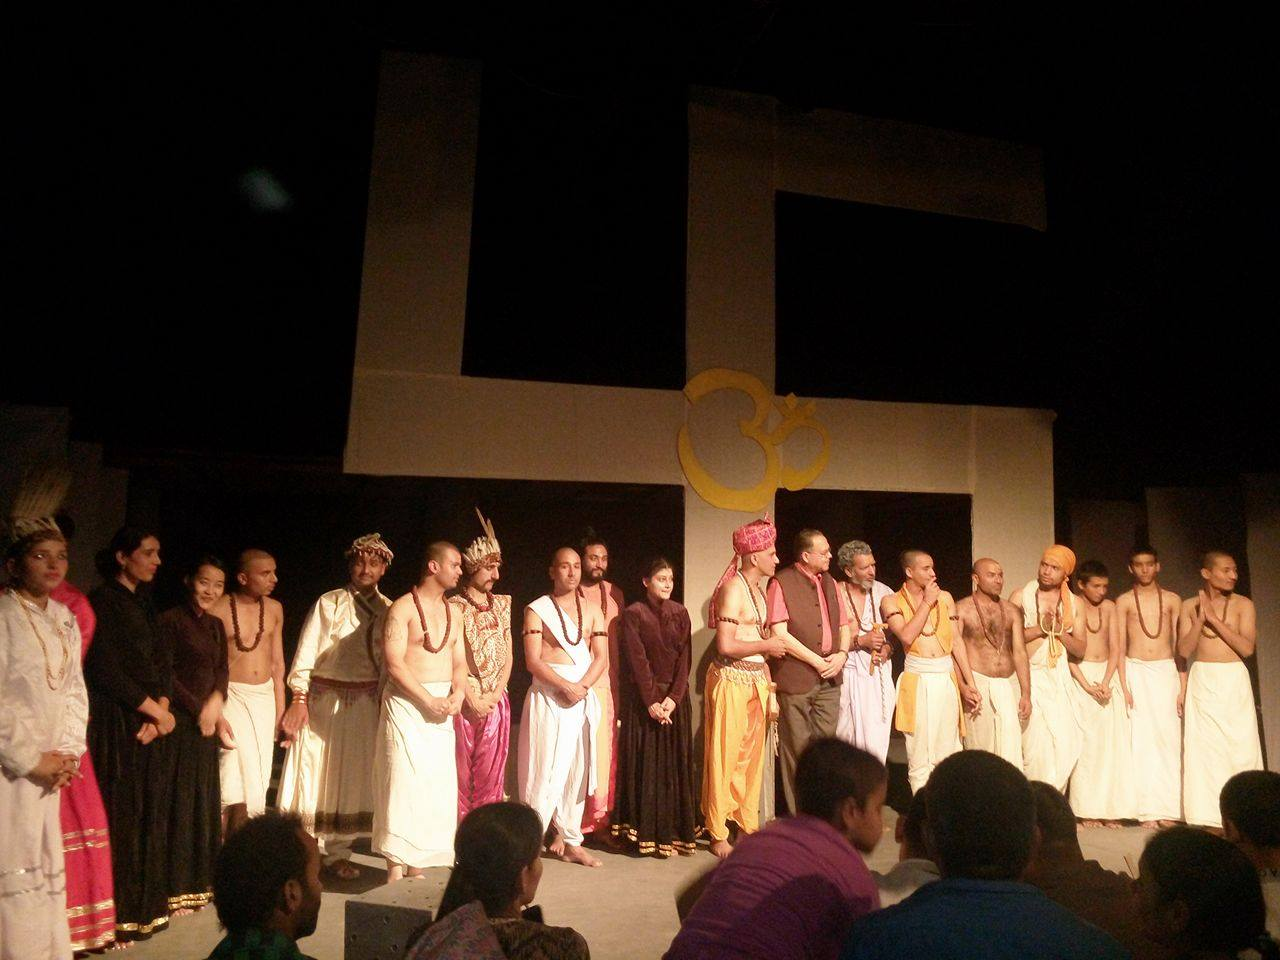 Final scene of the Play